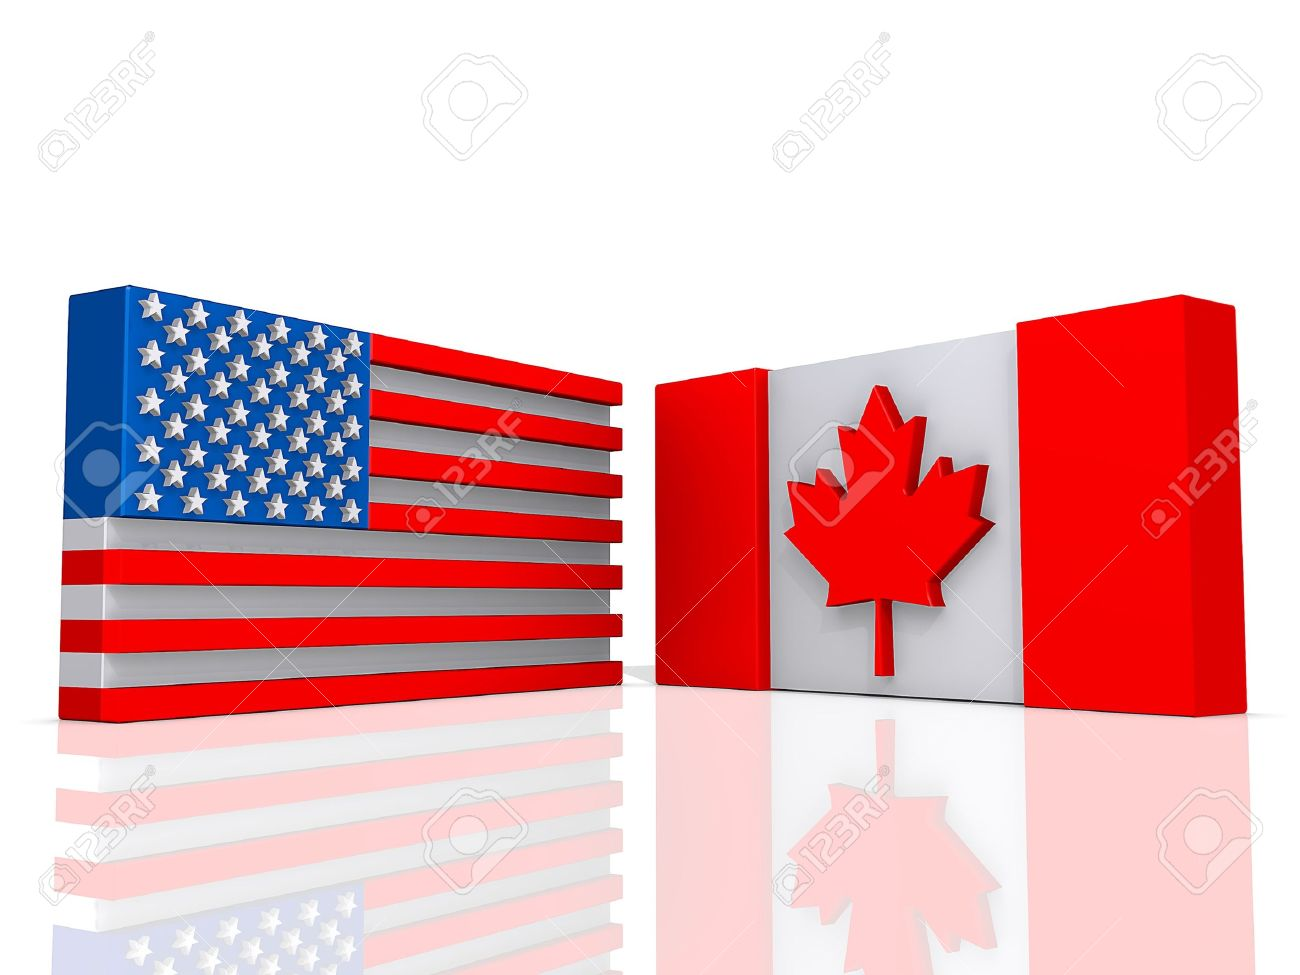 canada and united states of america flags on a shiny white